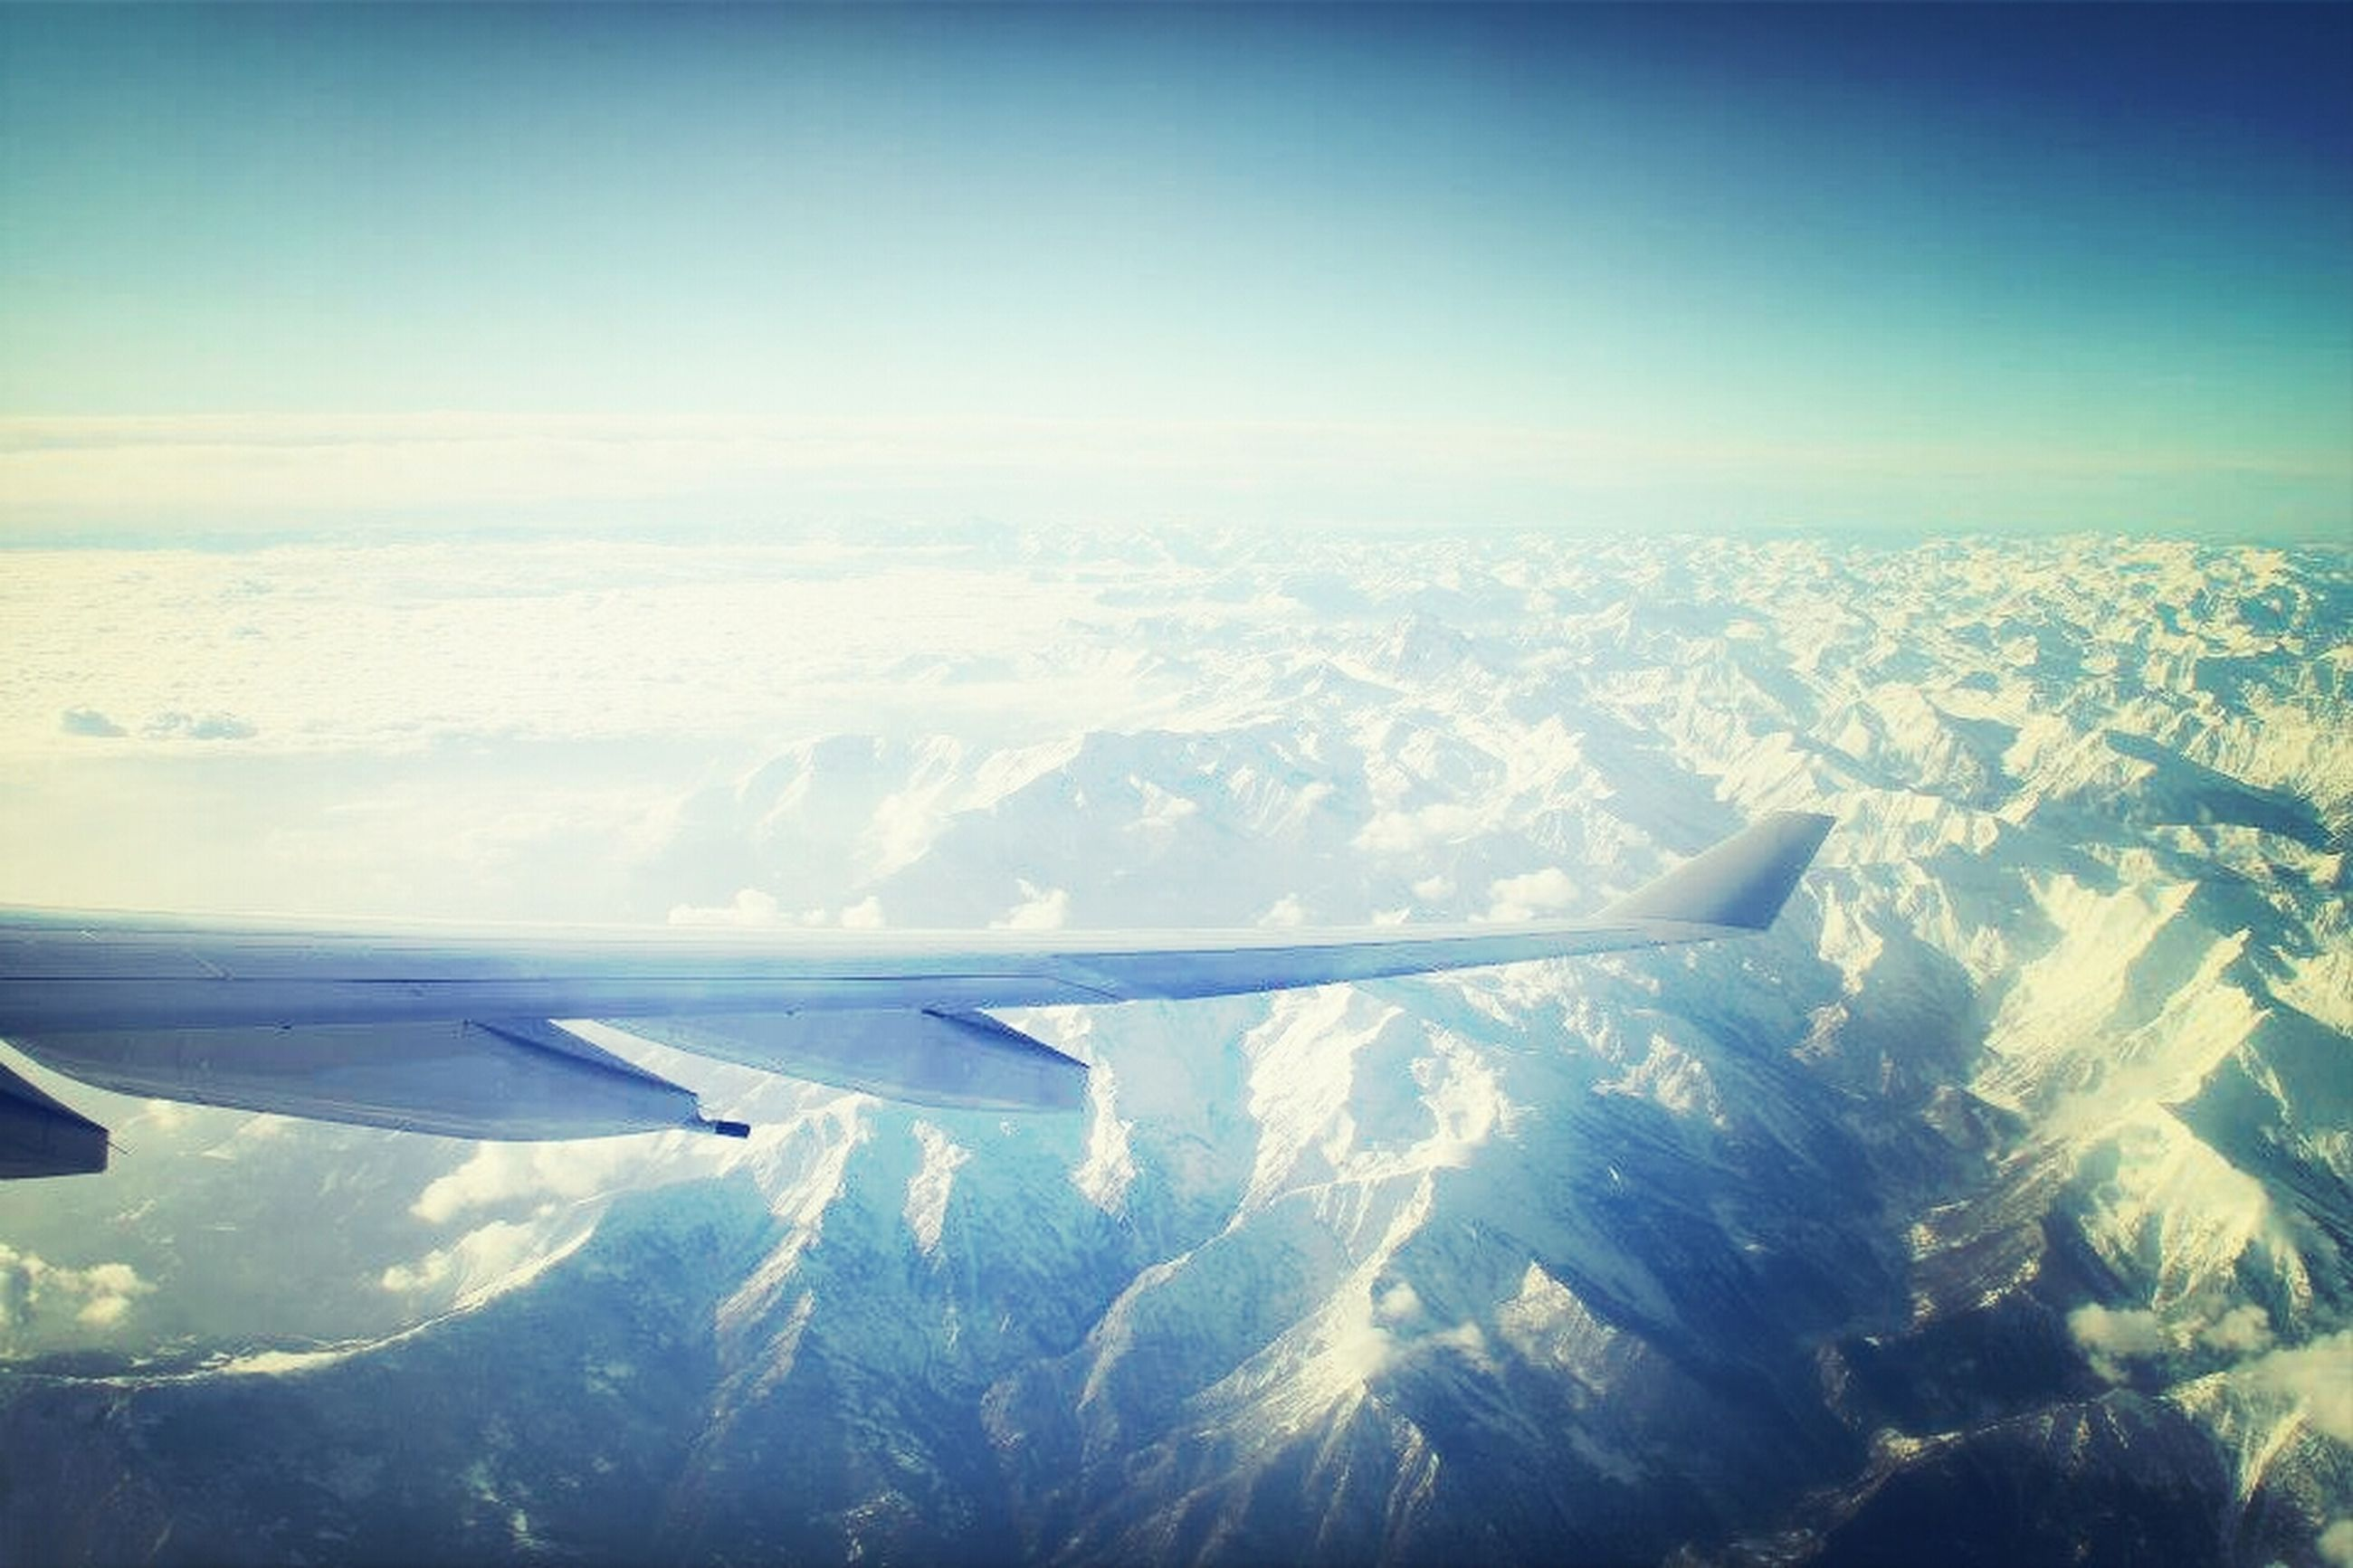 airplane, air vehicle, aircraft wing, aerial view, flying, transportation, snow, winter, mode of transport, cold temperature, landscape, scenics, beauty in nature, part of, travel, nature, cropped, blue, mid-air, snowcapped mountain